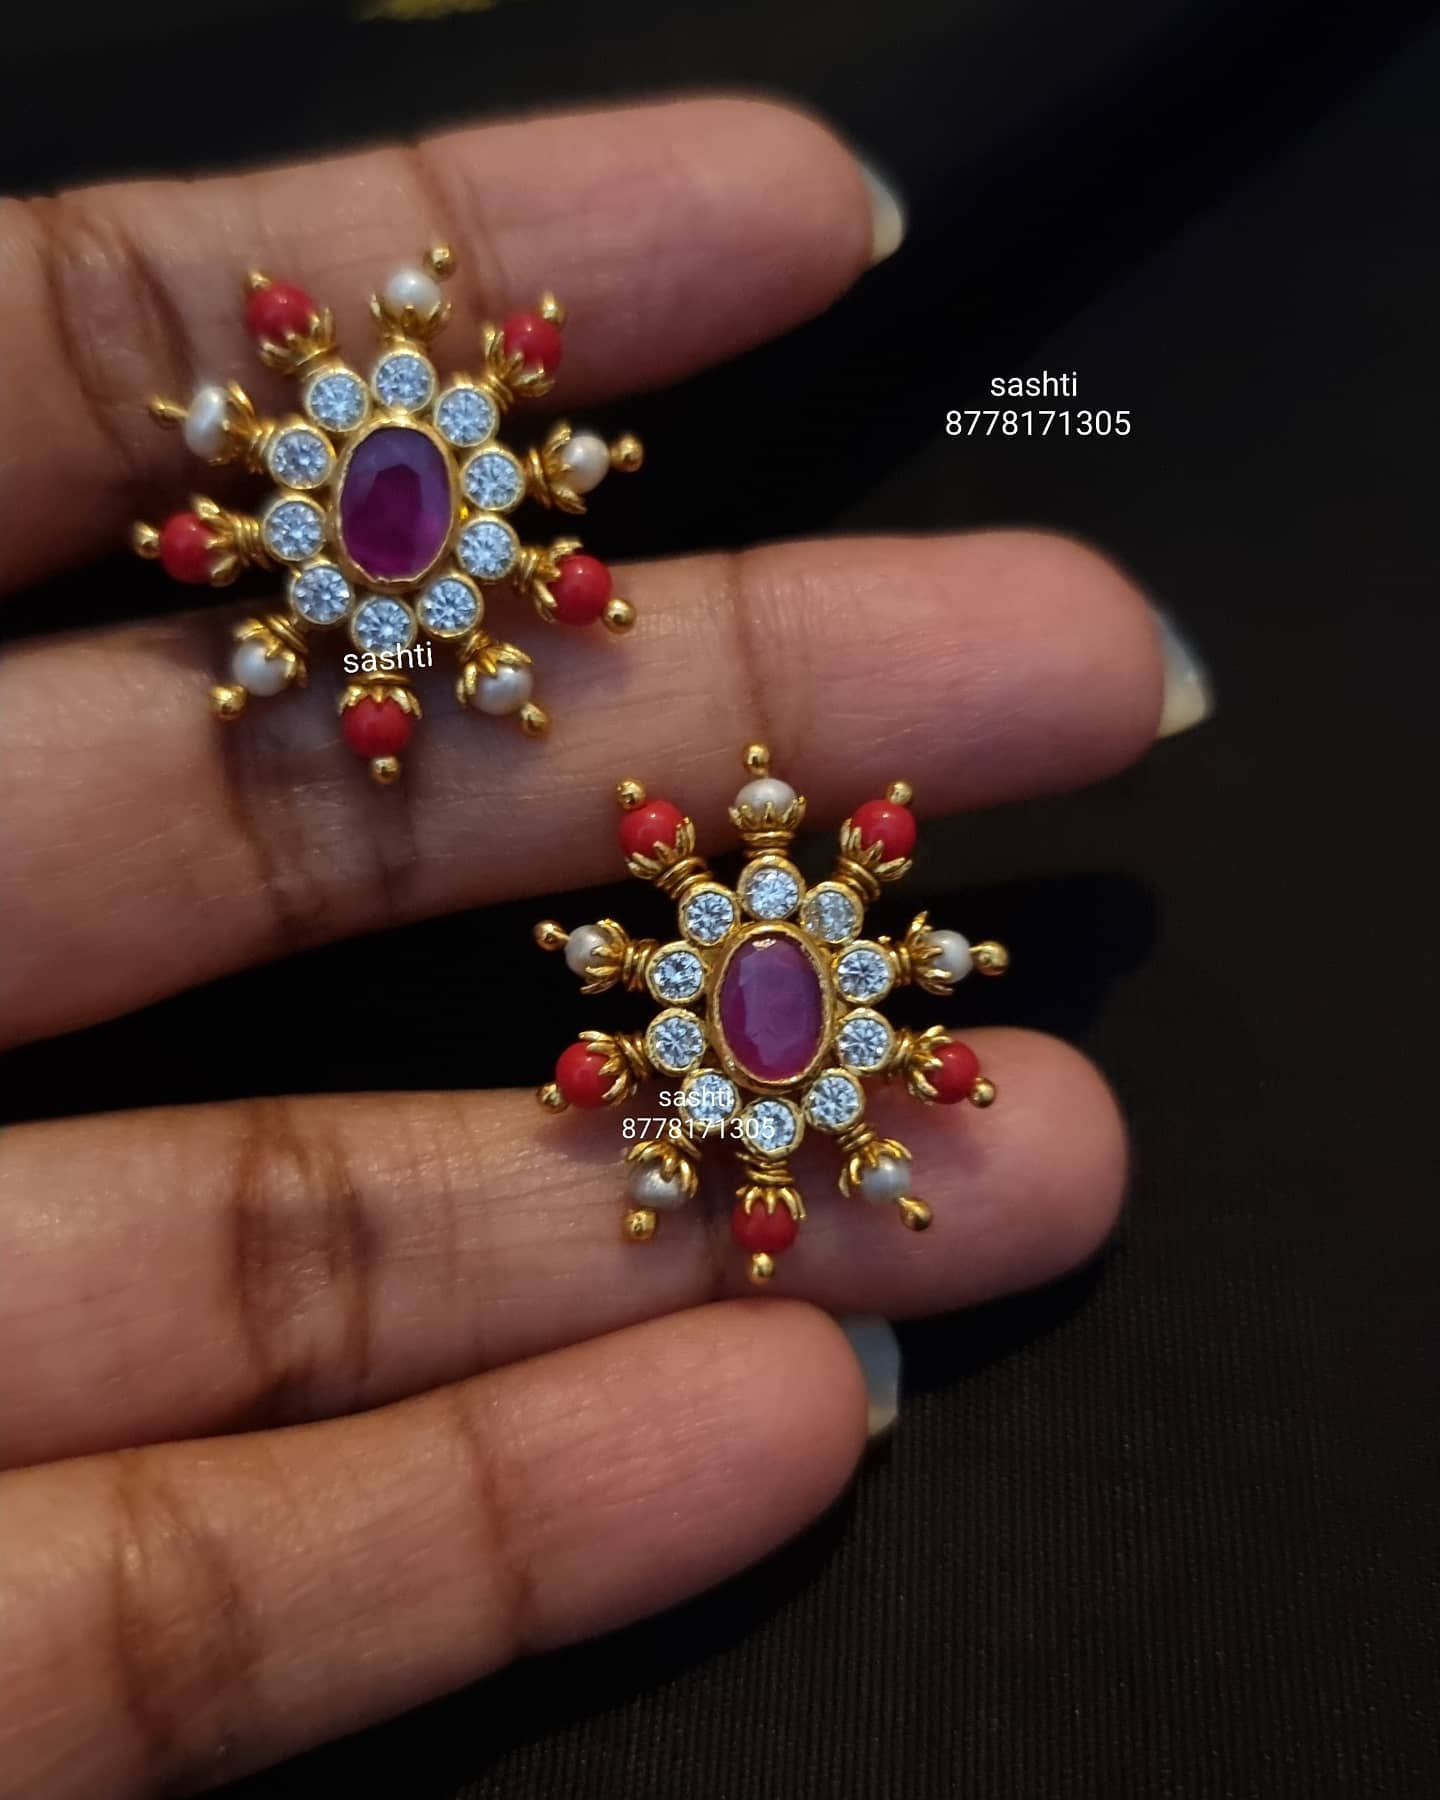 Stunning silver earrings studded multi precious stones. Silver earrings with gold polishing. 2021-05-12